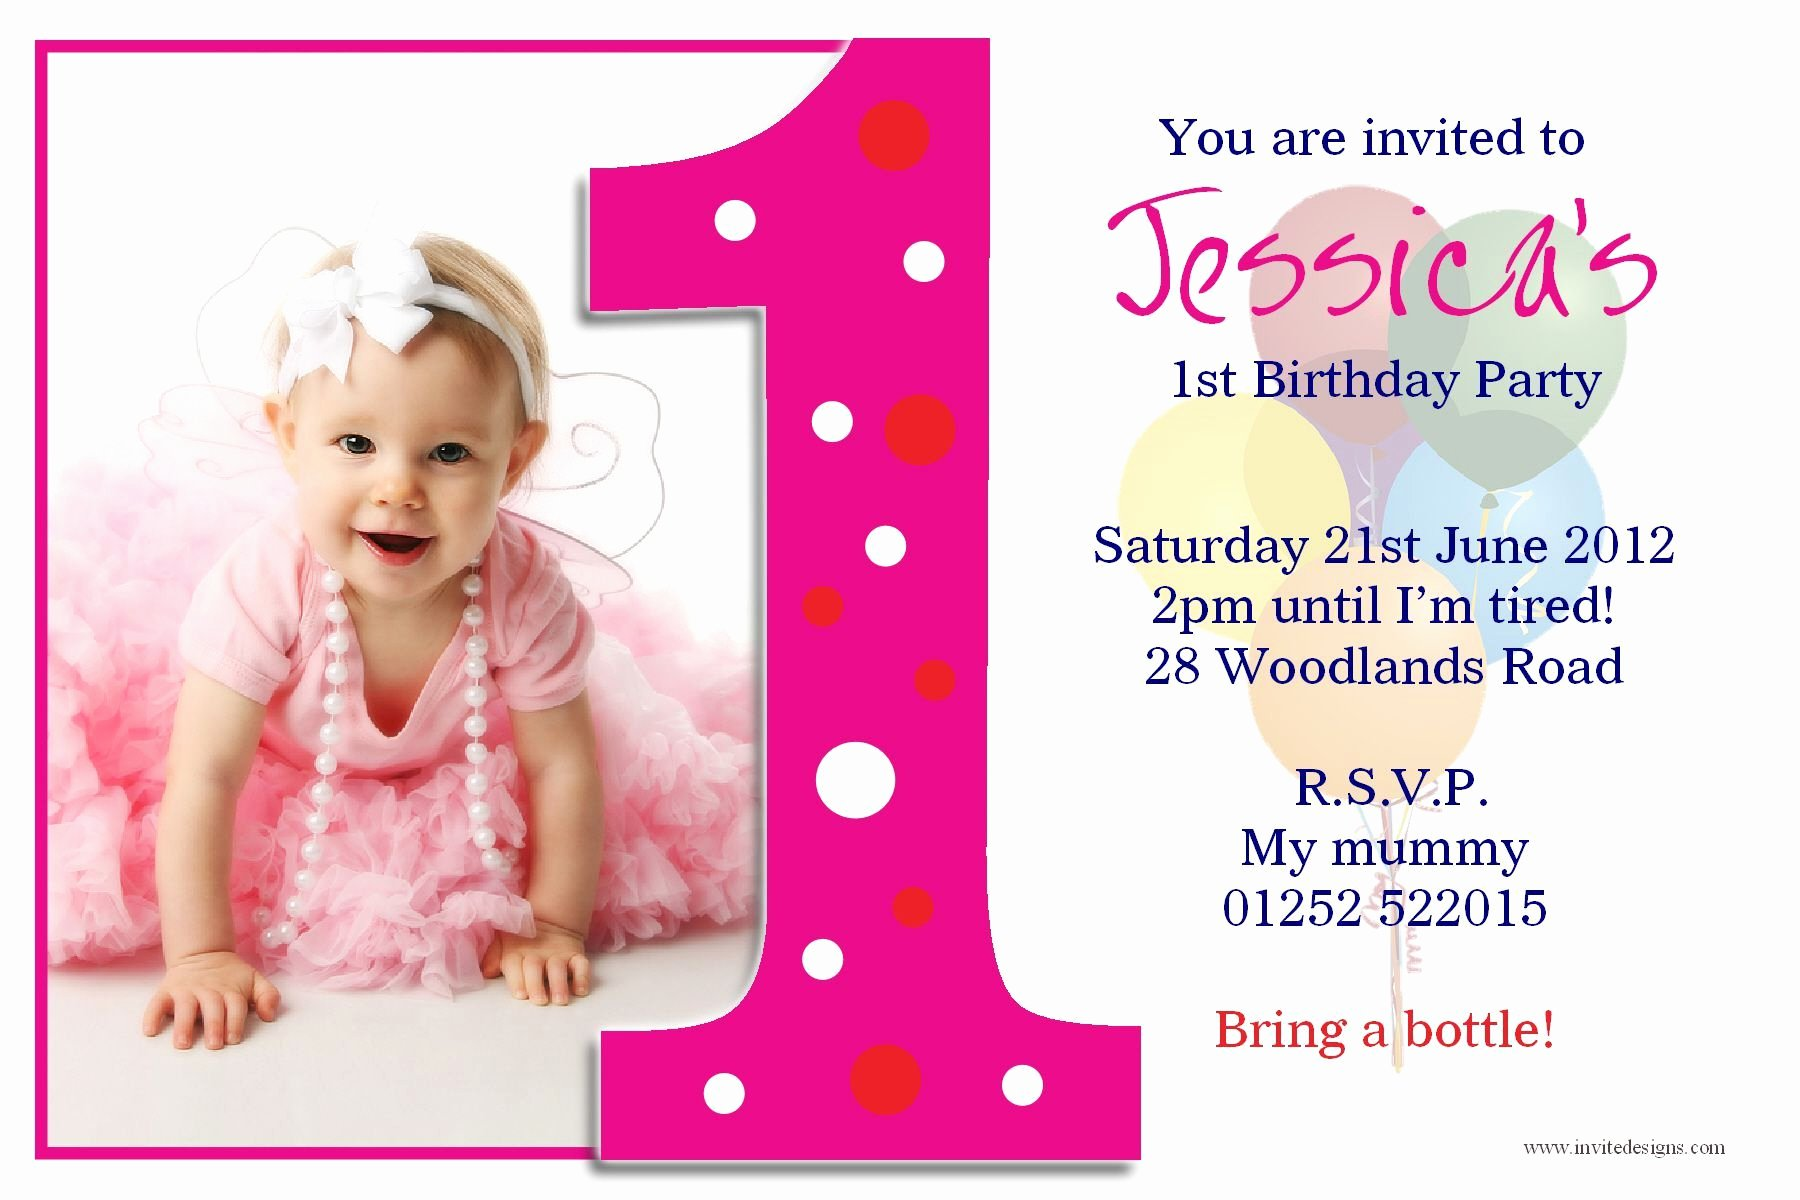 1st Birthday Invitation Wording Samples Awesome Birthday Party First Birthday Invitations Card